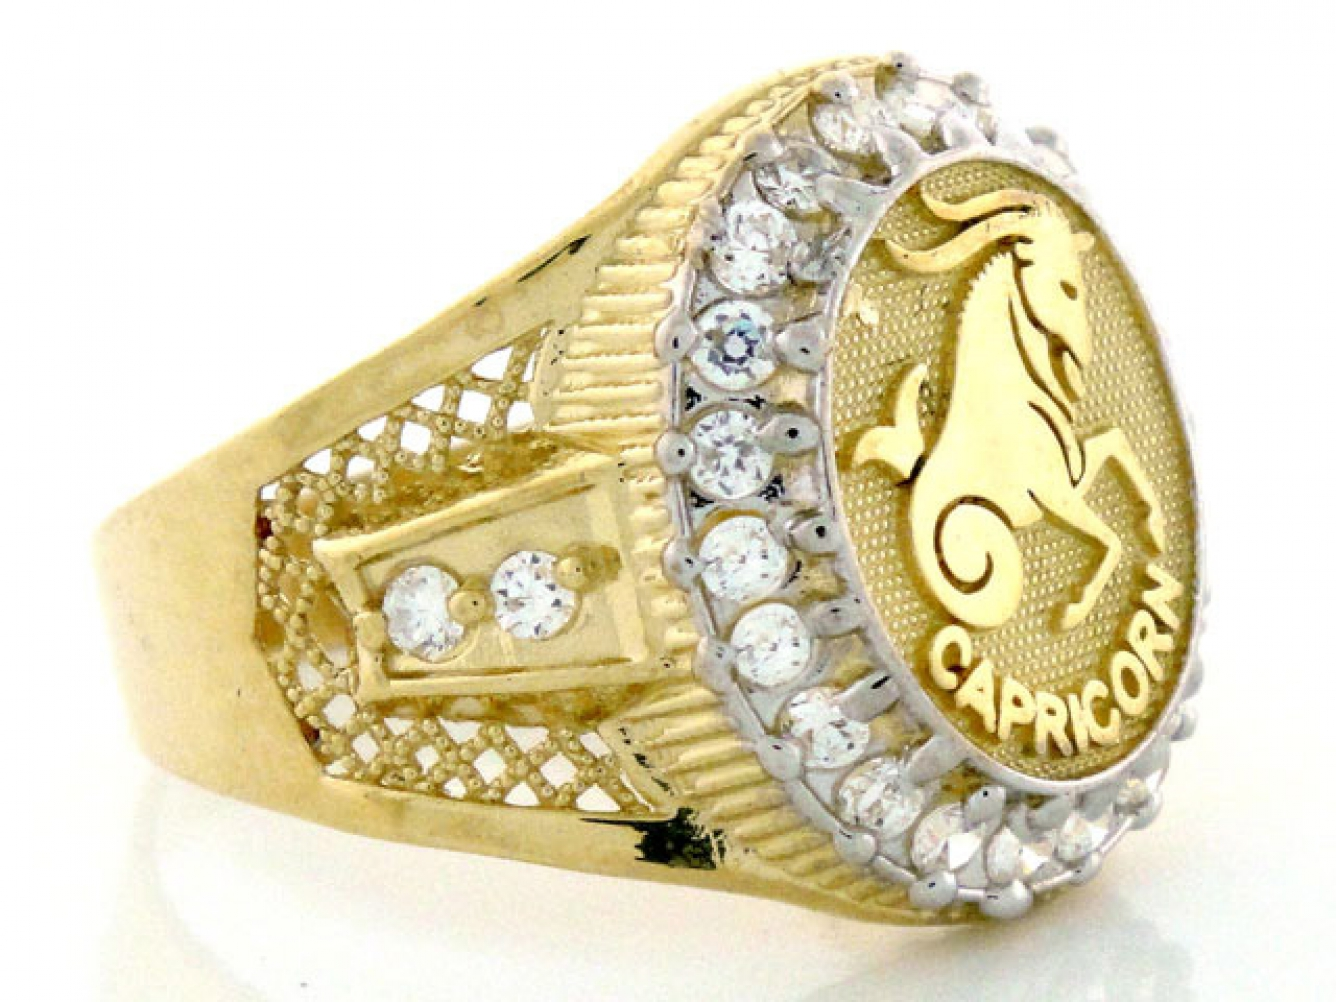 10k 14k Solid Yellow Gold Mens Zodiac Cz Ring